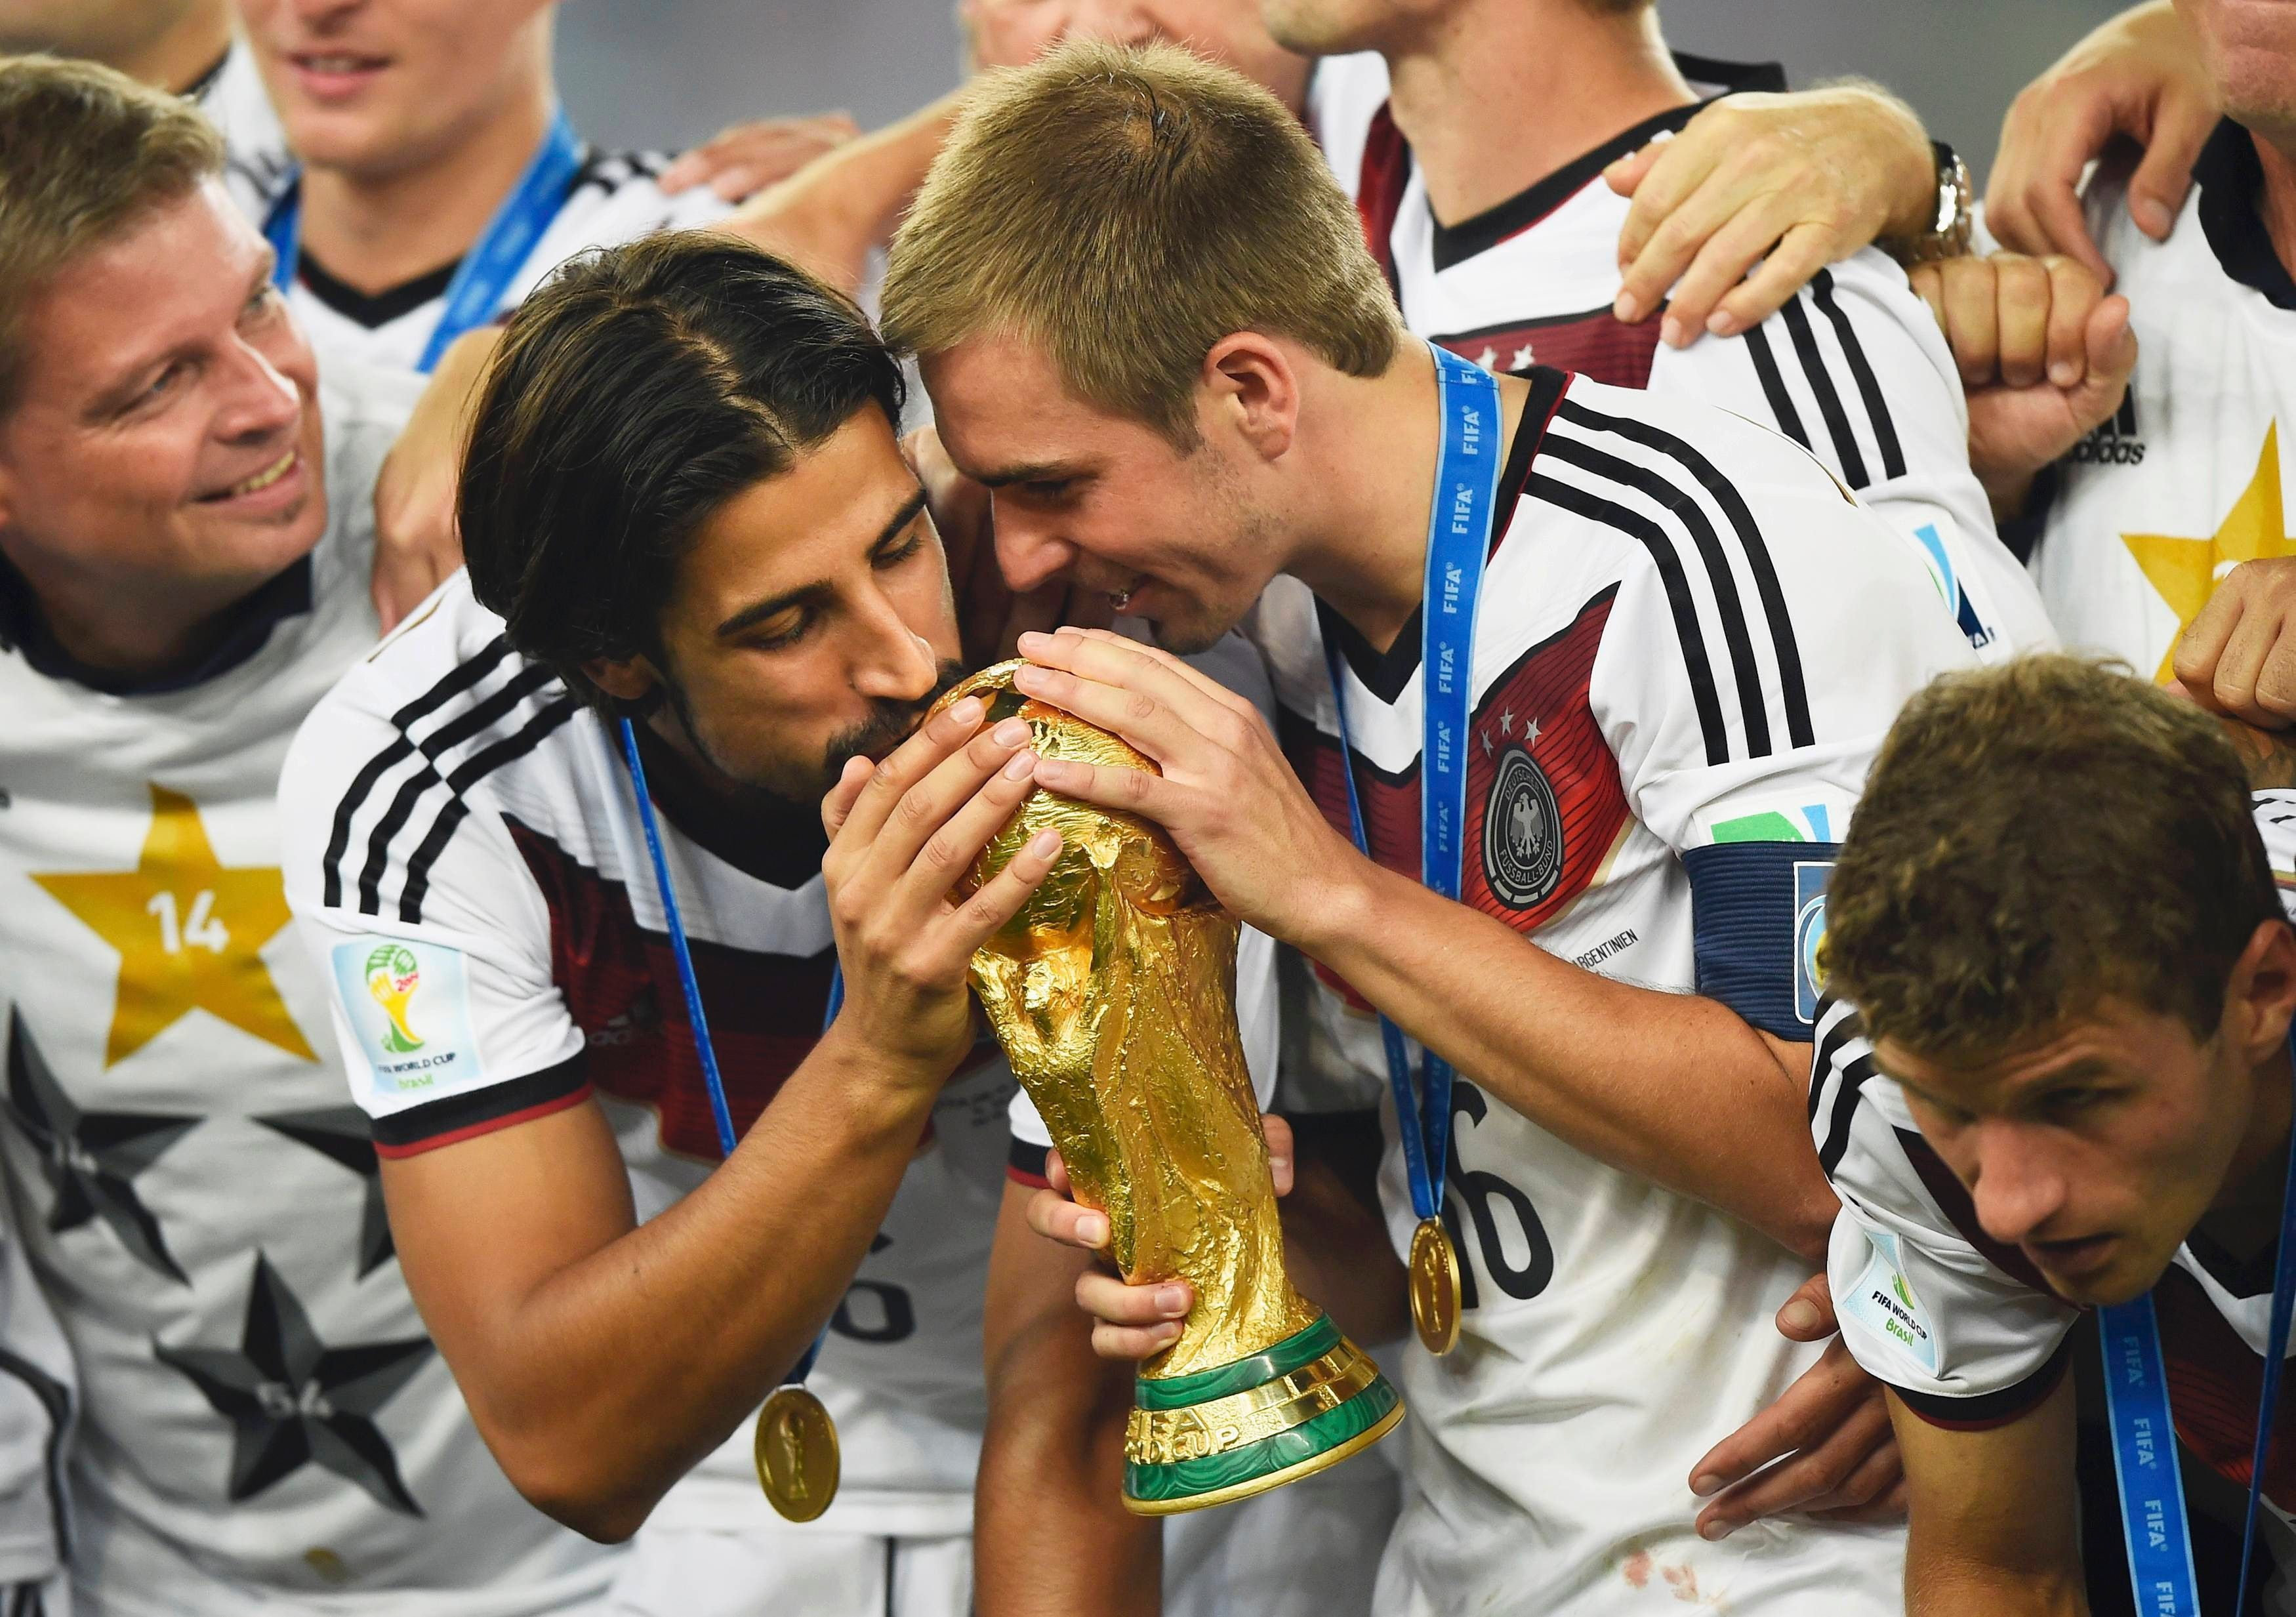 8.+Germany's+Sami+Khedira+(L)+and+Philipp+Lahm+(2nd+R)+kiss+the+World+Cup+trophy+as+they+celebrate+at+the+end+of+the+2014+World+Cup+final+against+Argentina.+Reuters.jpg (3500×2465)